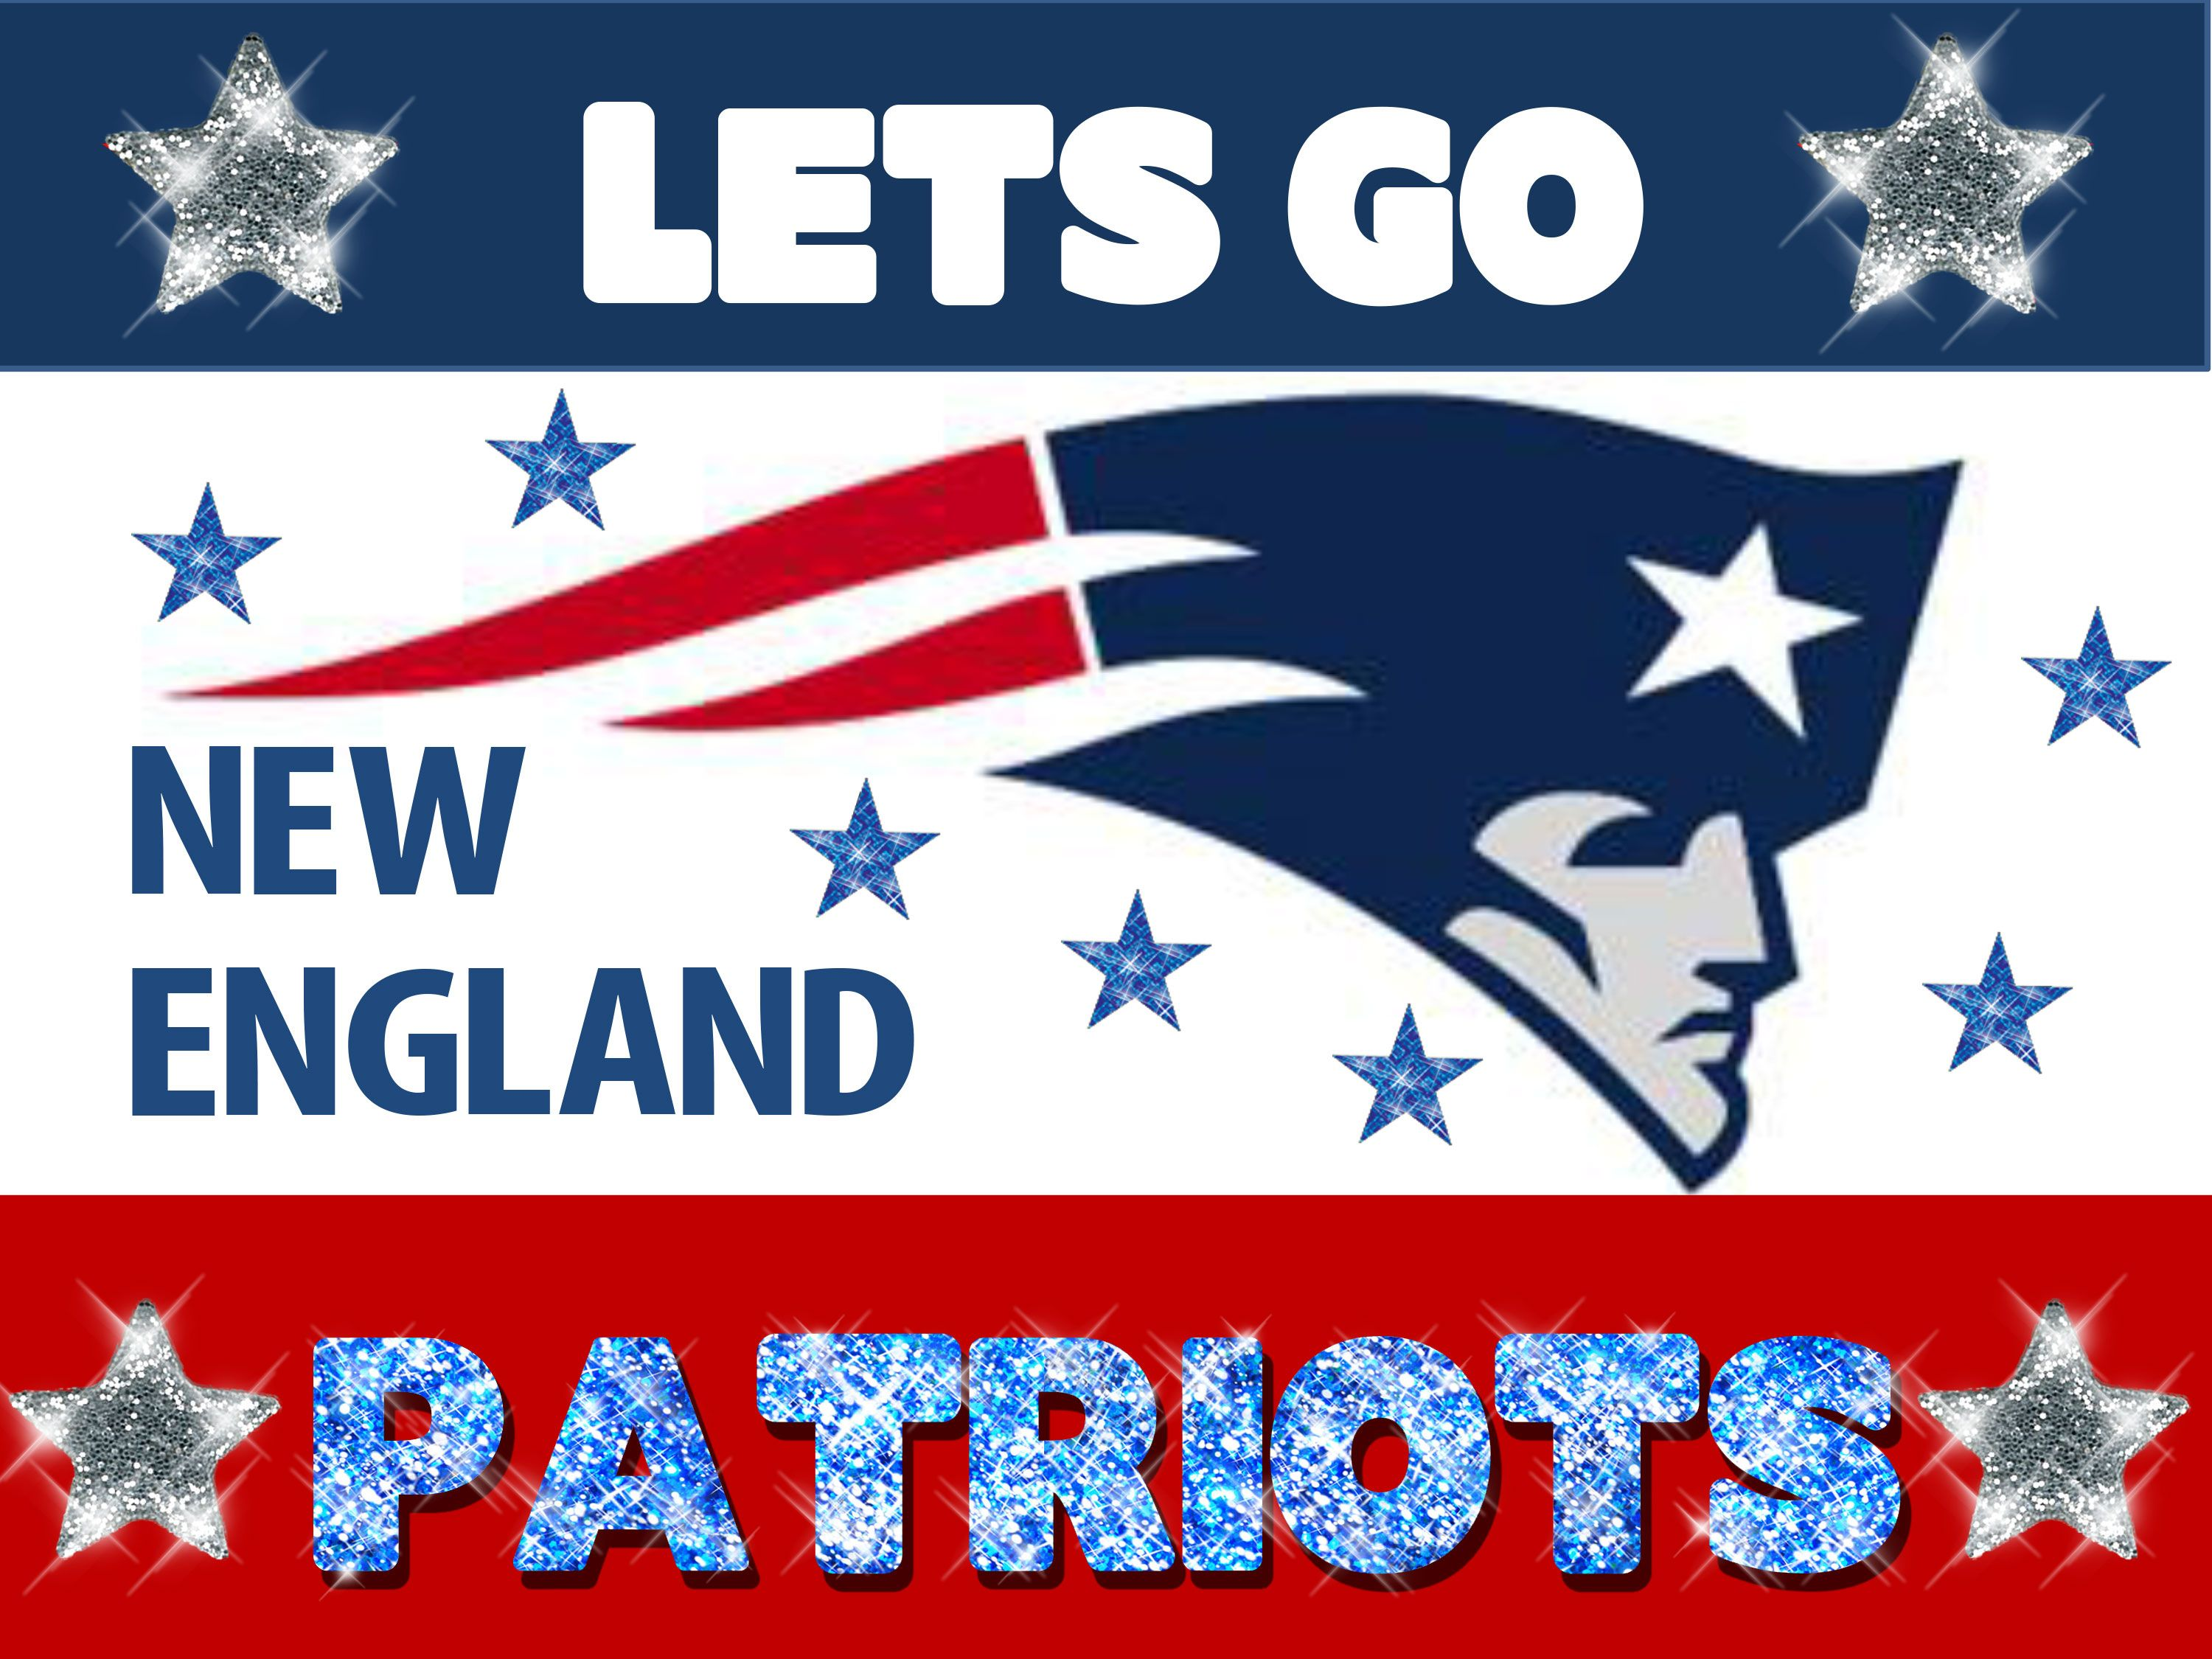 Pin By Artskills On Poster Ideas New England Patriots New England Patriots Football Patriots Football